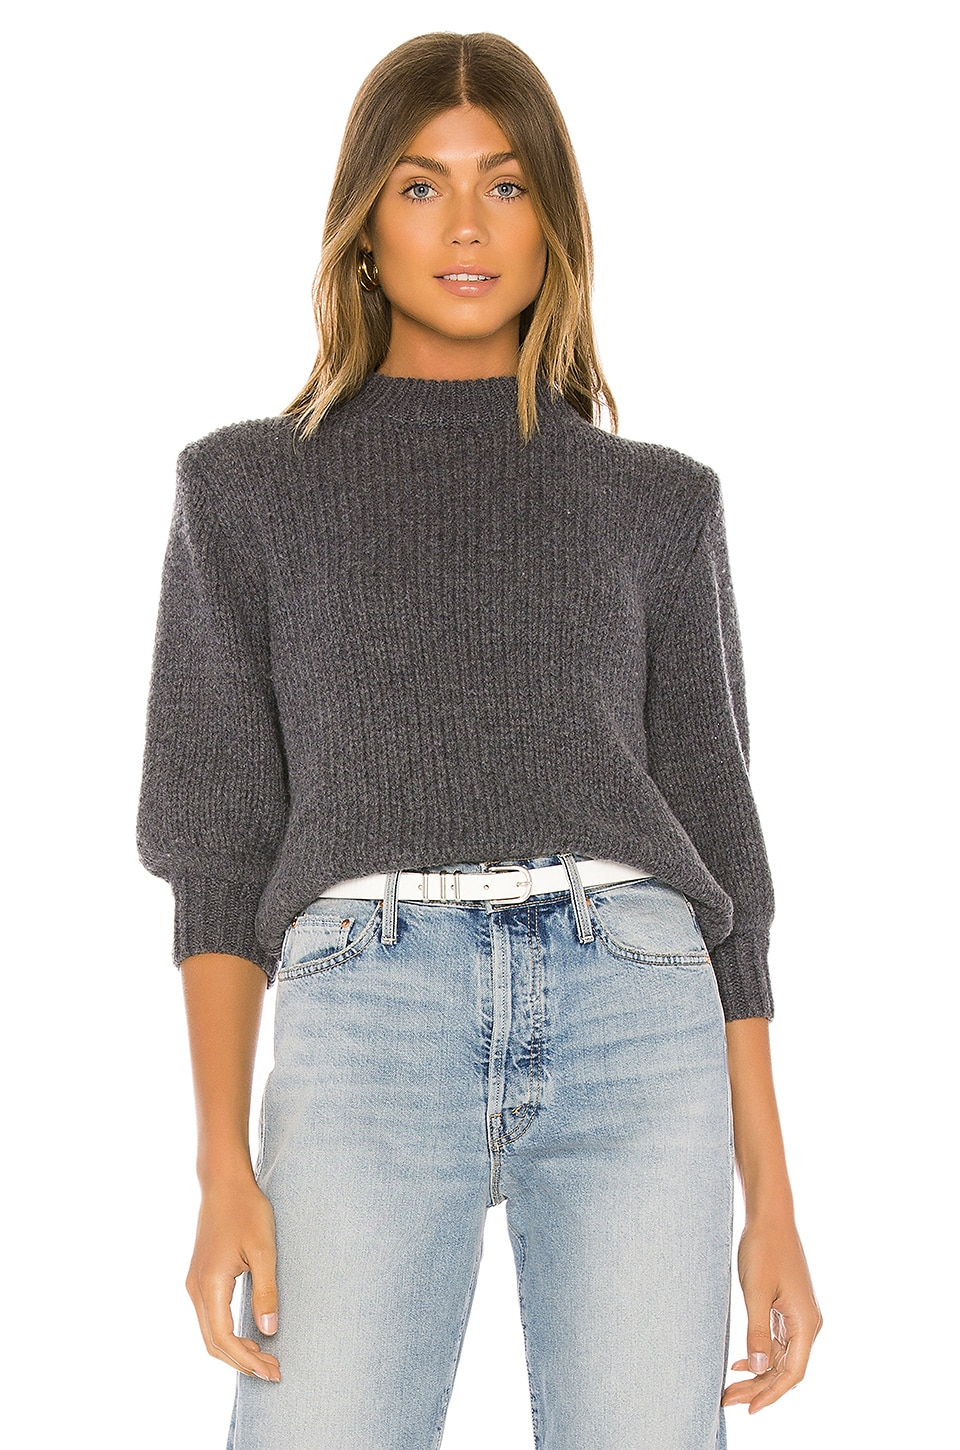 One Grey Day Milly 3/4 Pullover in Charcoal